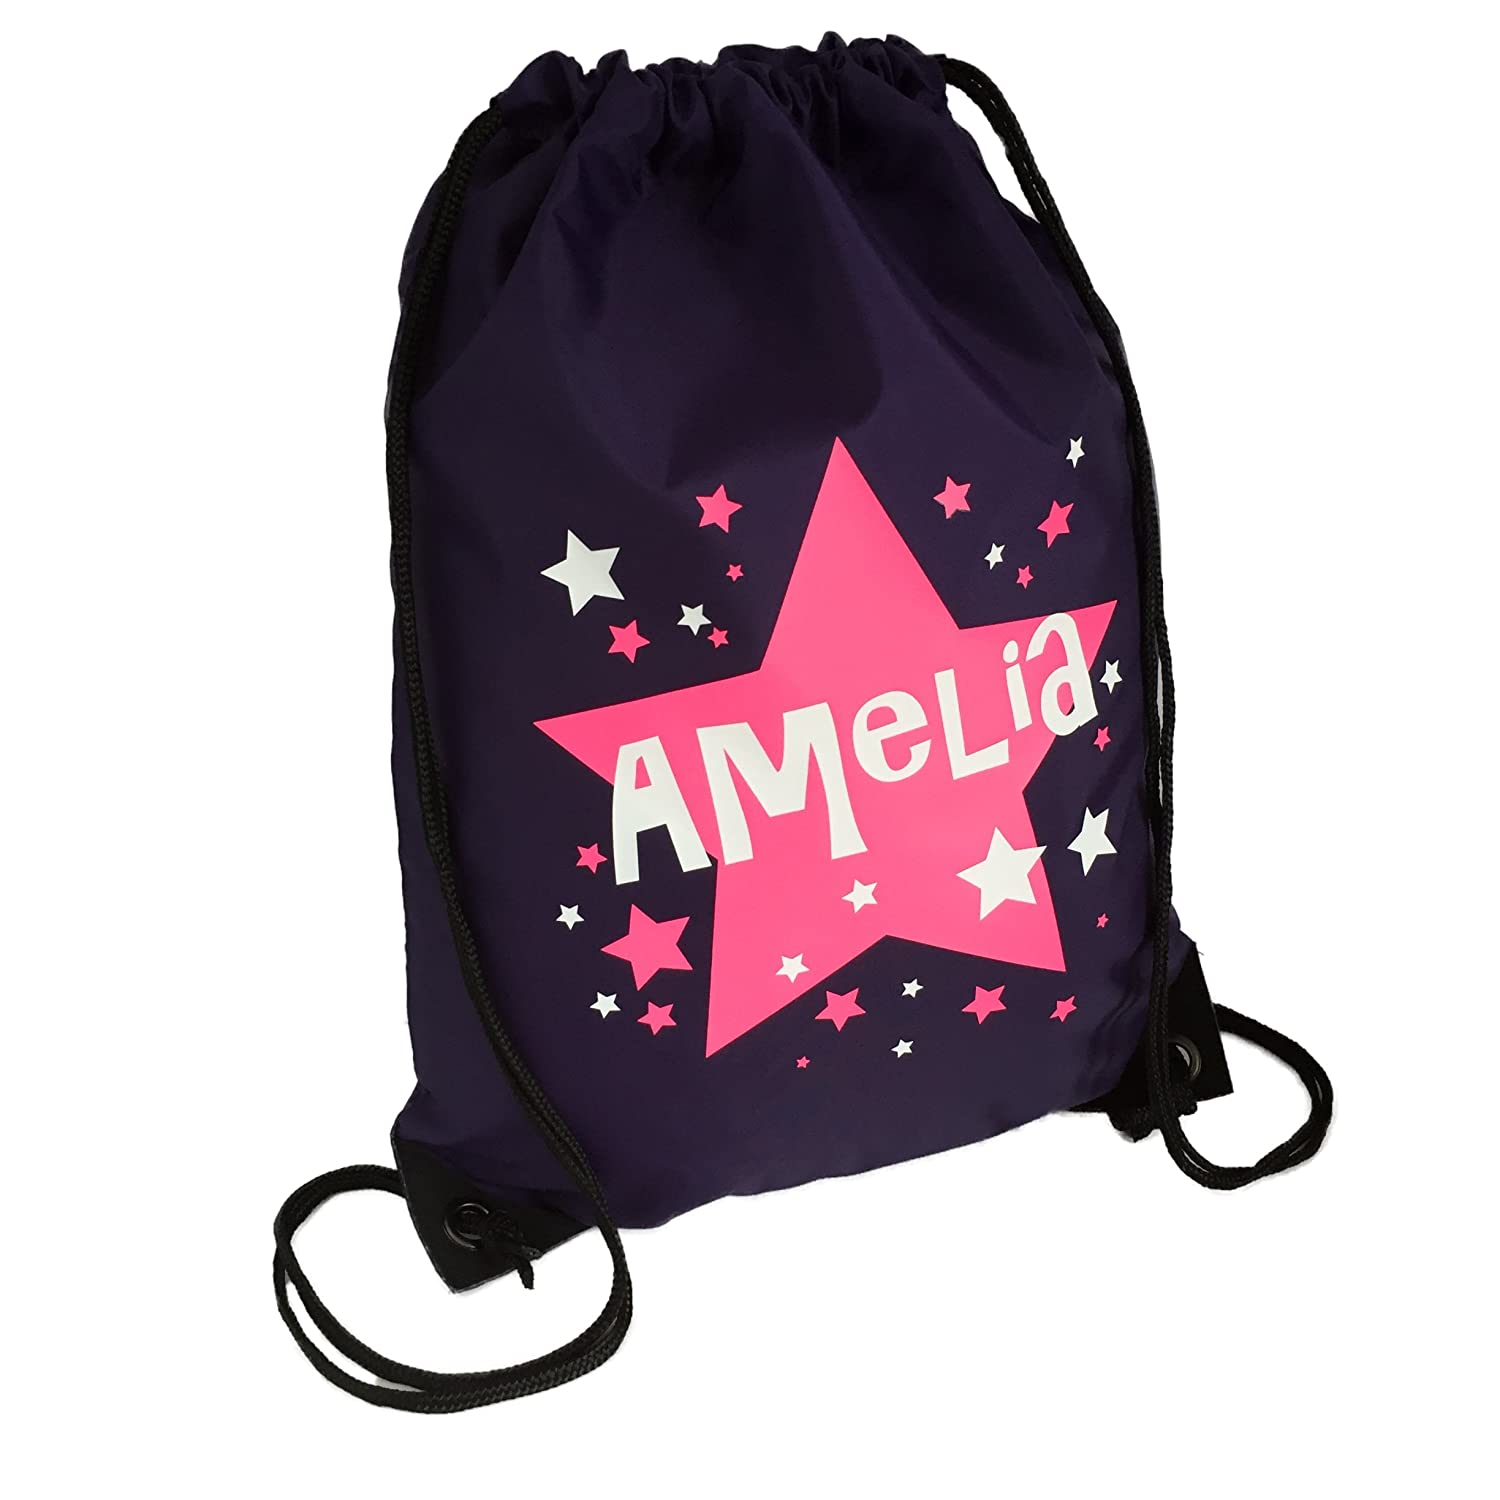 Personalised Kids Purple And Pink Stars Theme Drawstring Swimming, School, PE Bag For Girls And Boys PURPLE BAG The Supreme Gift Company SO-BB-GB-DB-0027